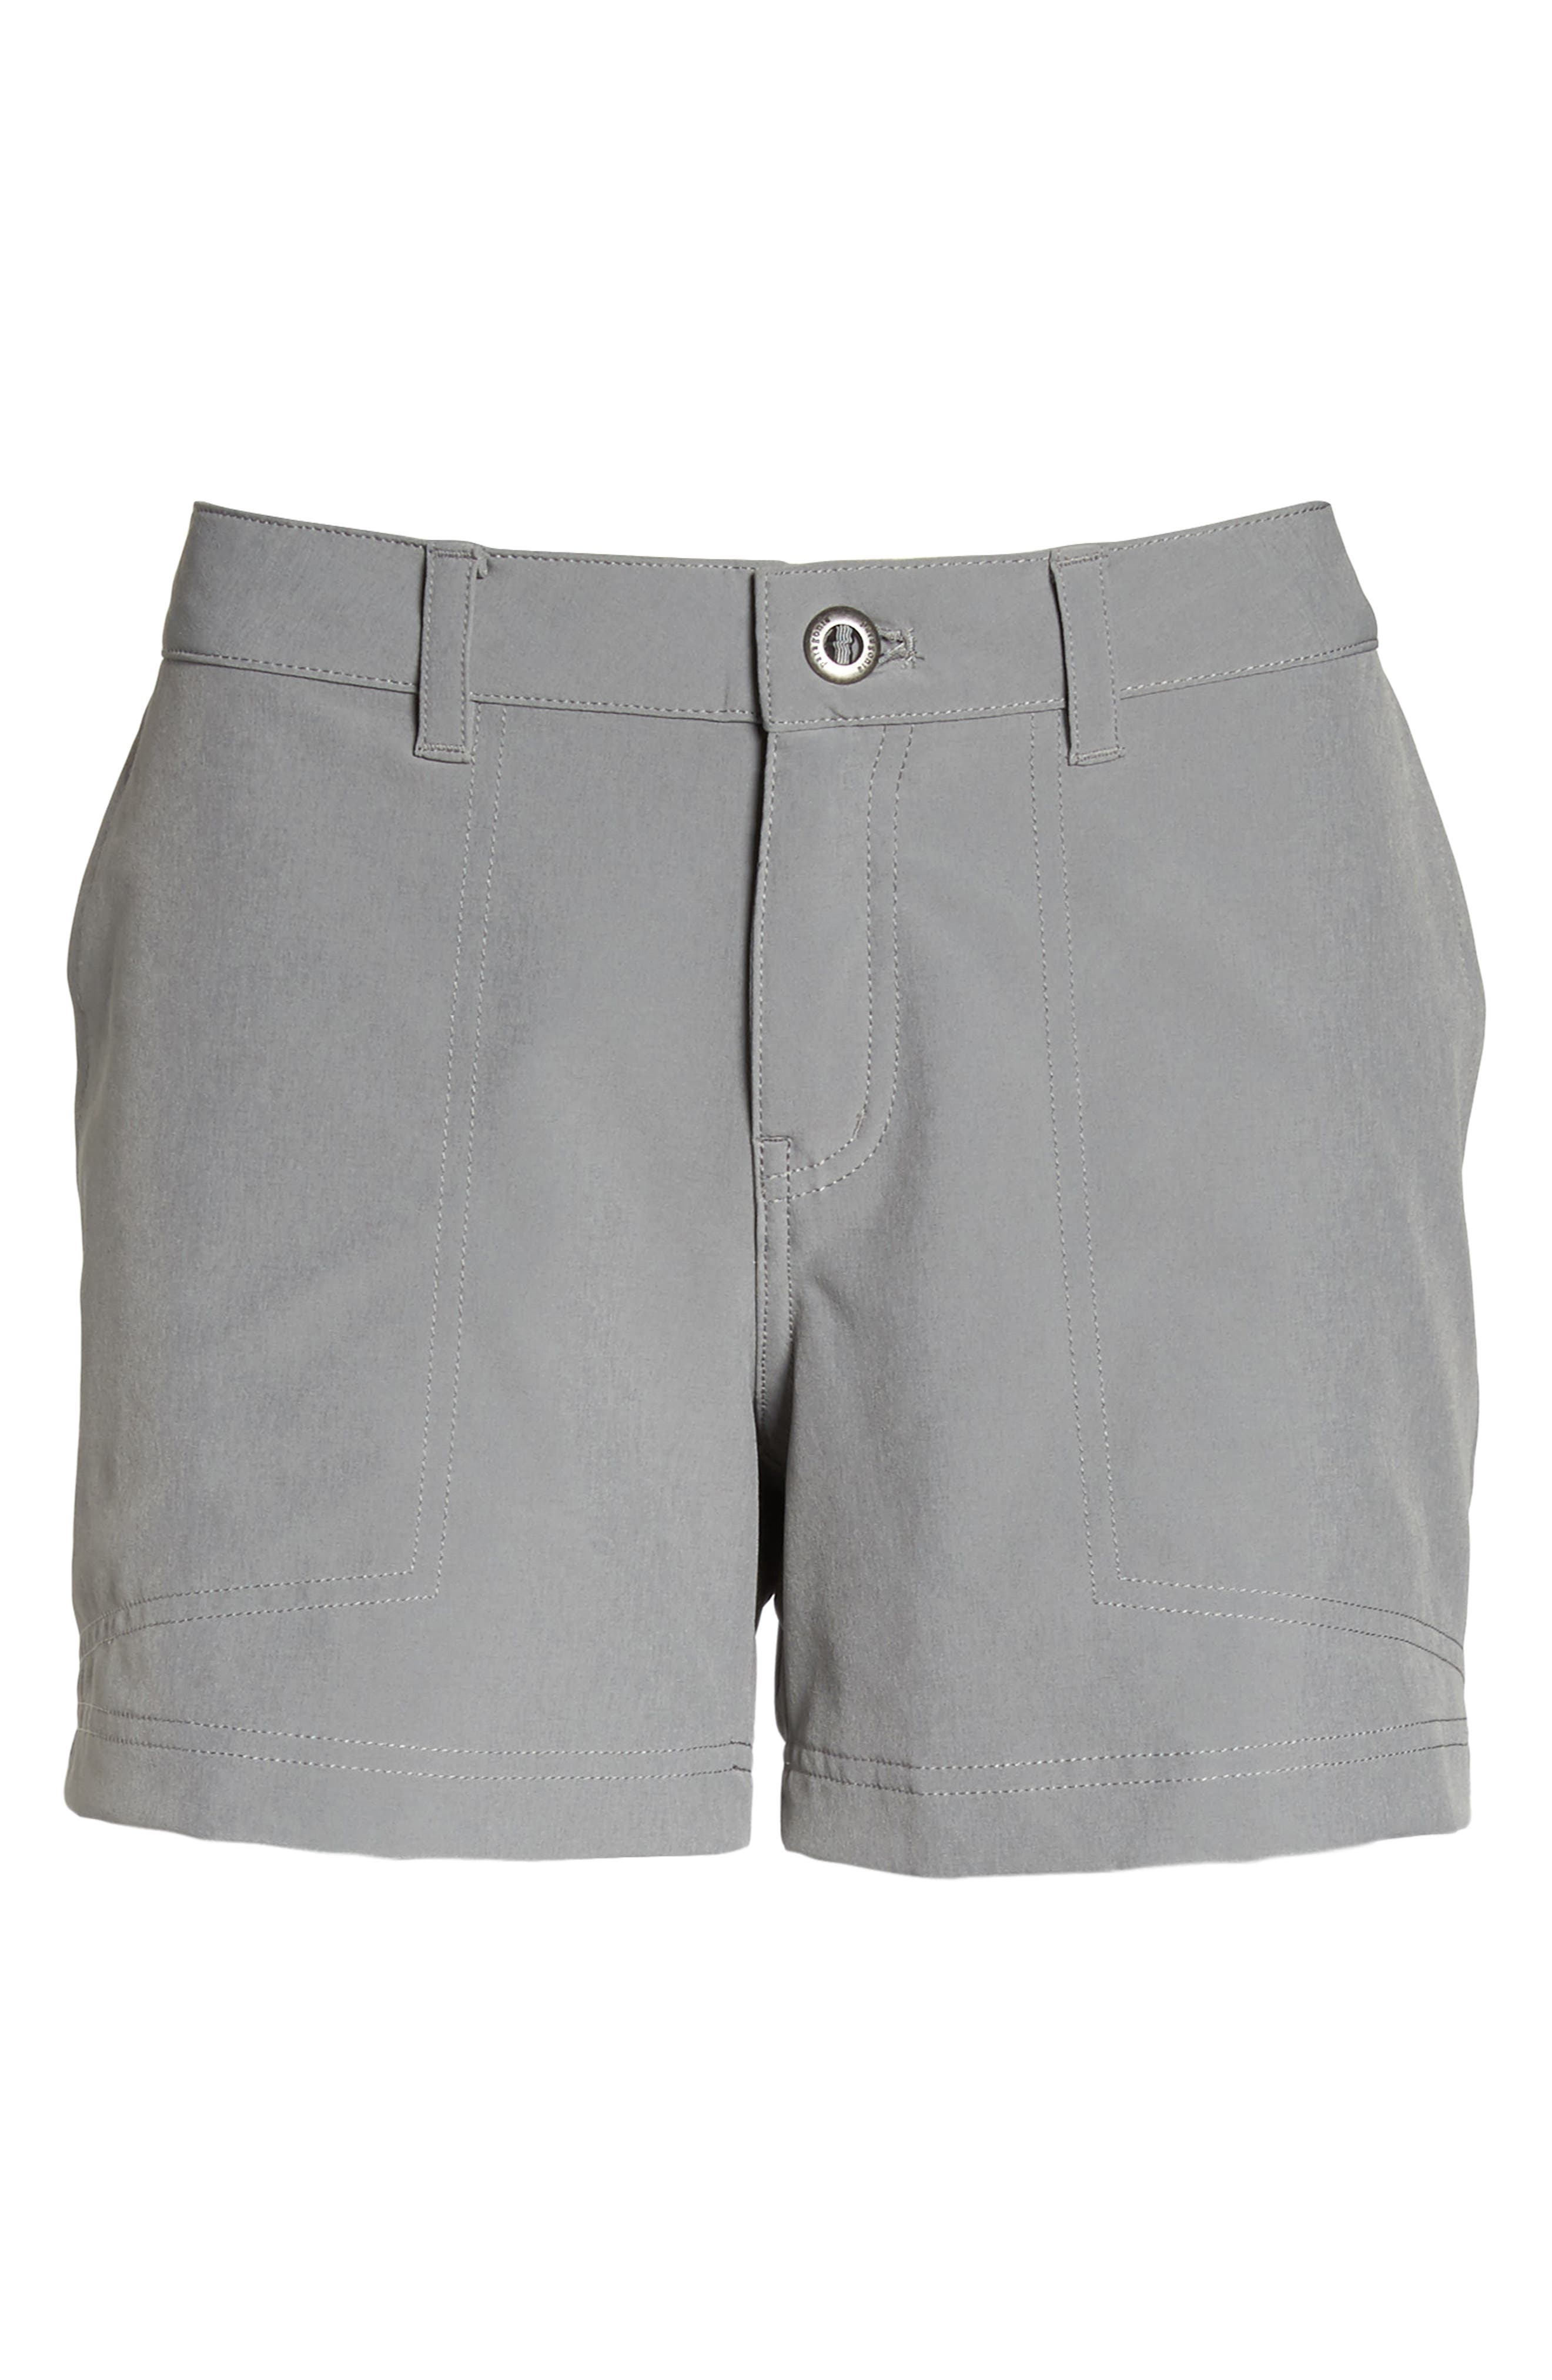 Happy Hike Shorts,                             Alternate thumbnail 7, color,                             Feather Grey